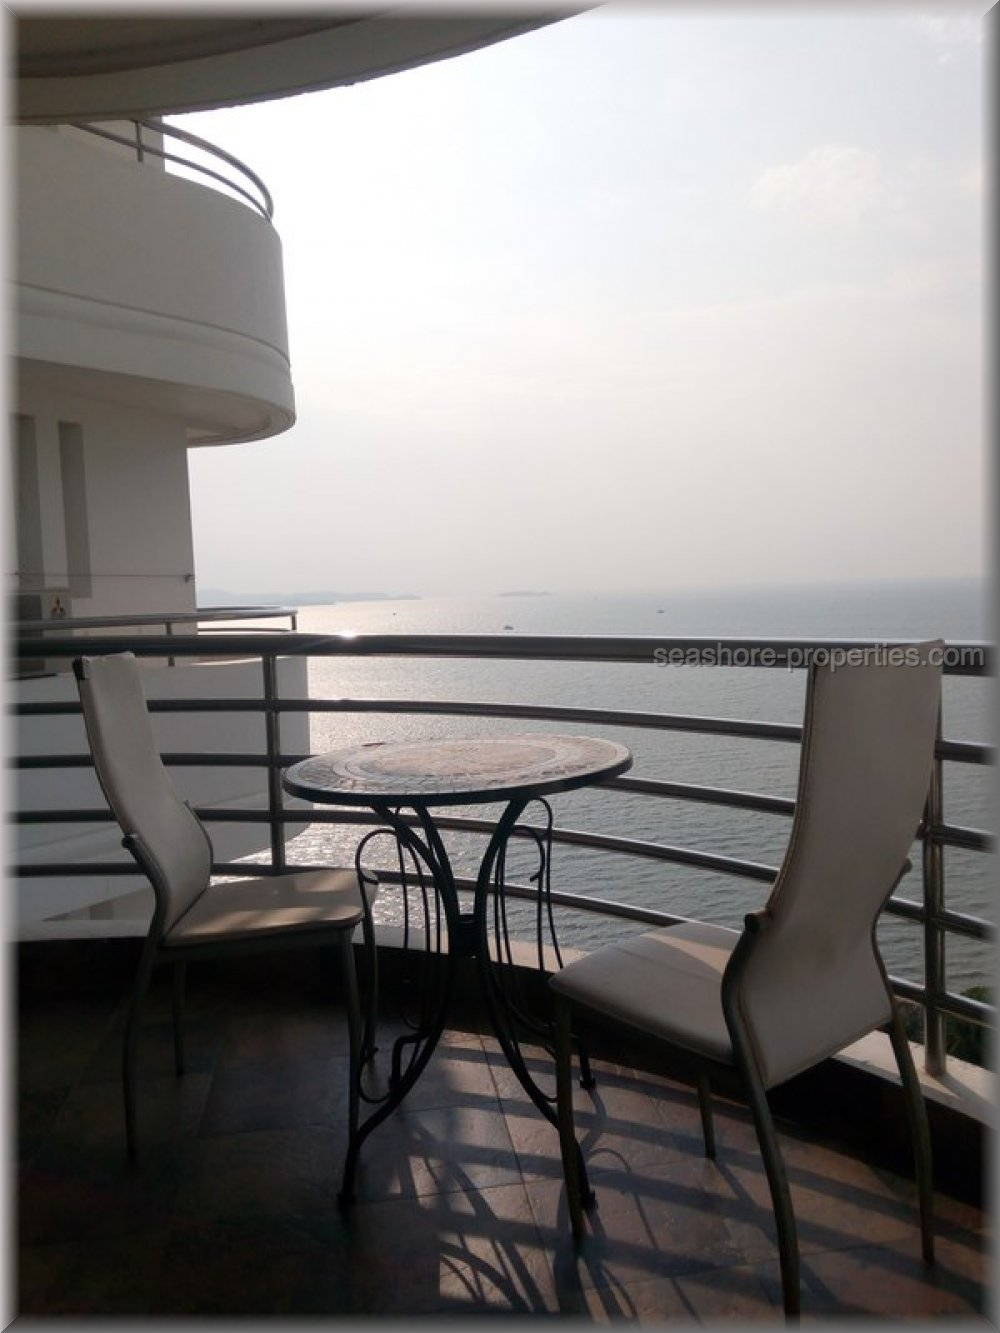 royal cliff condo for sale in Pratumnak Pattaya